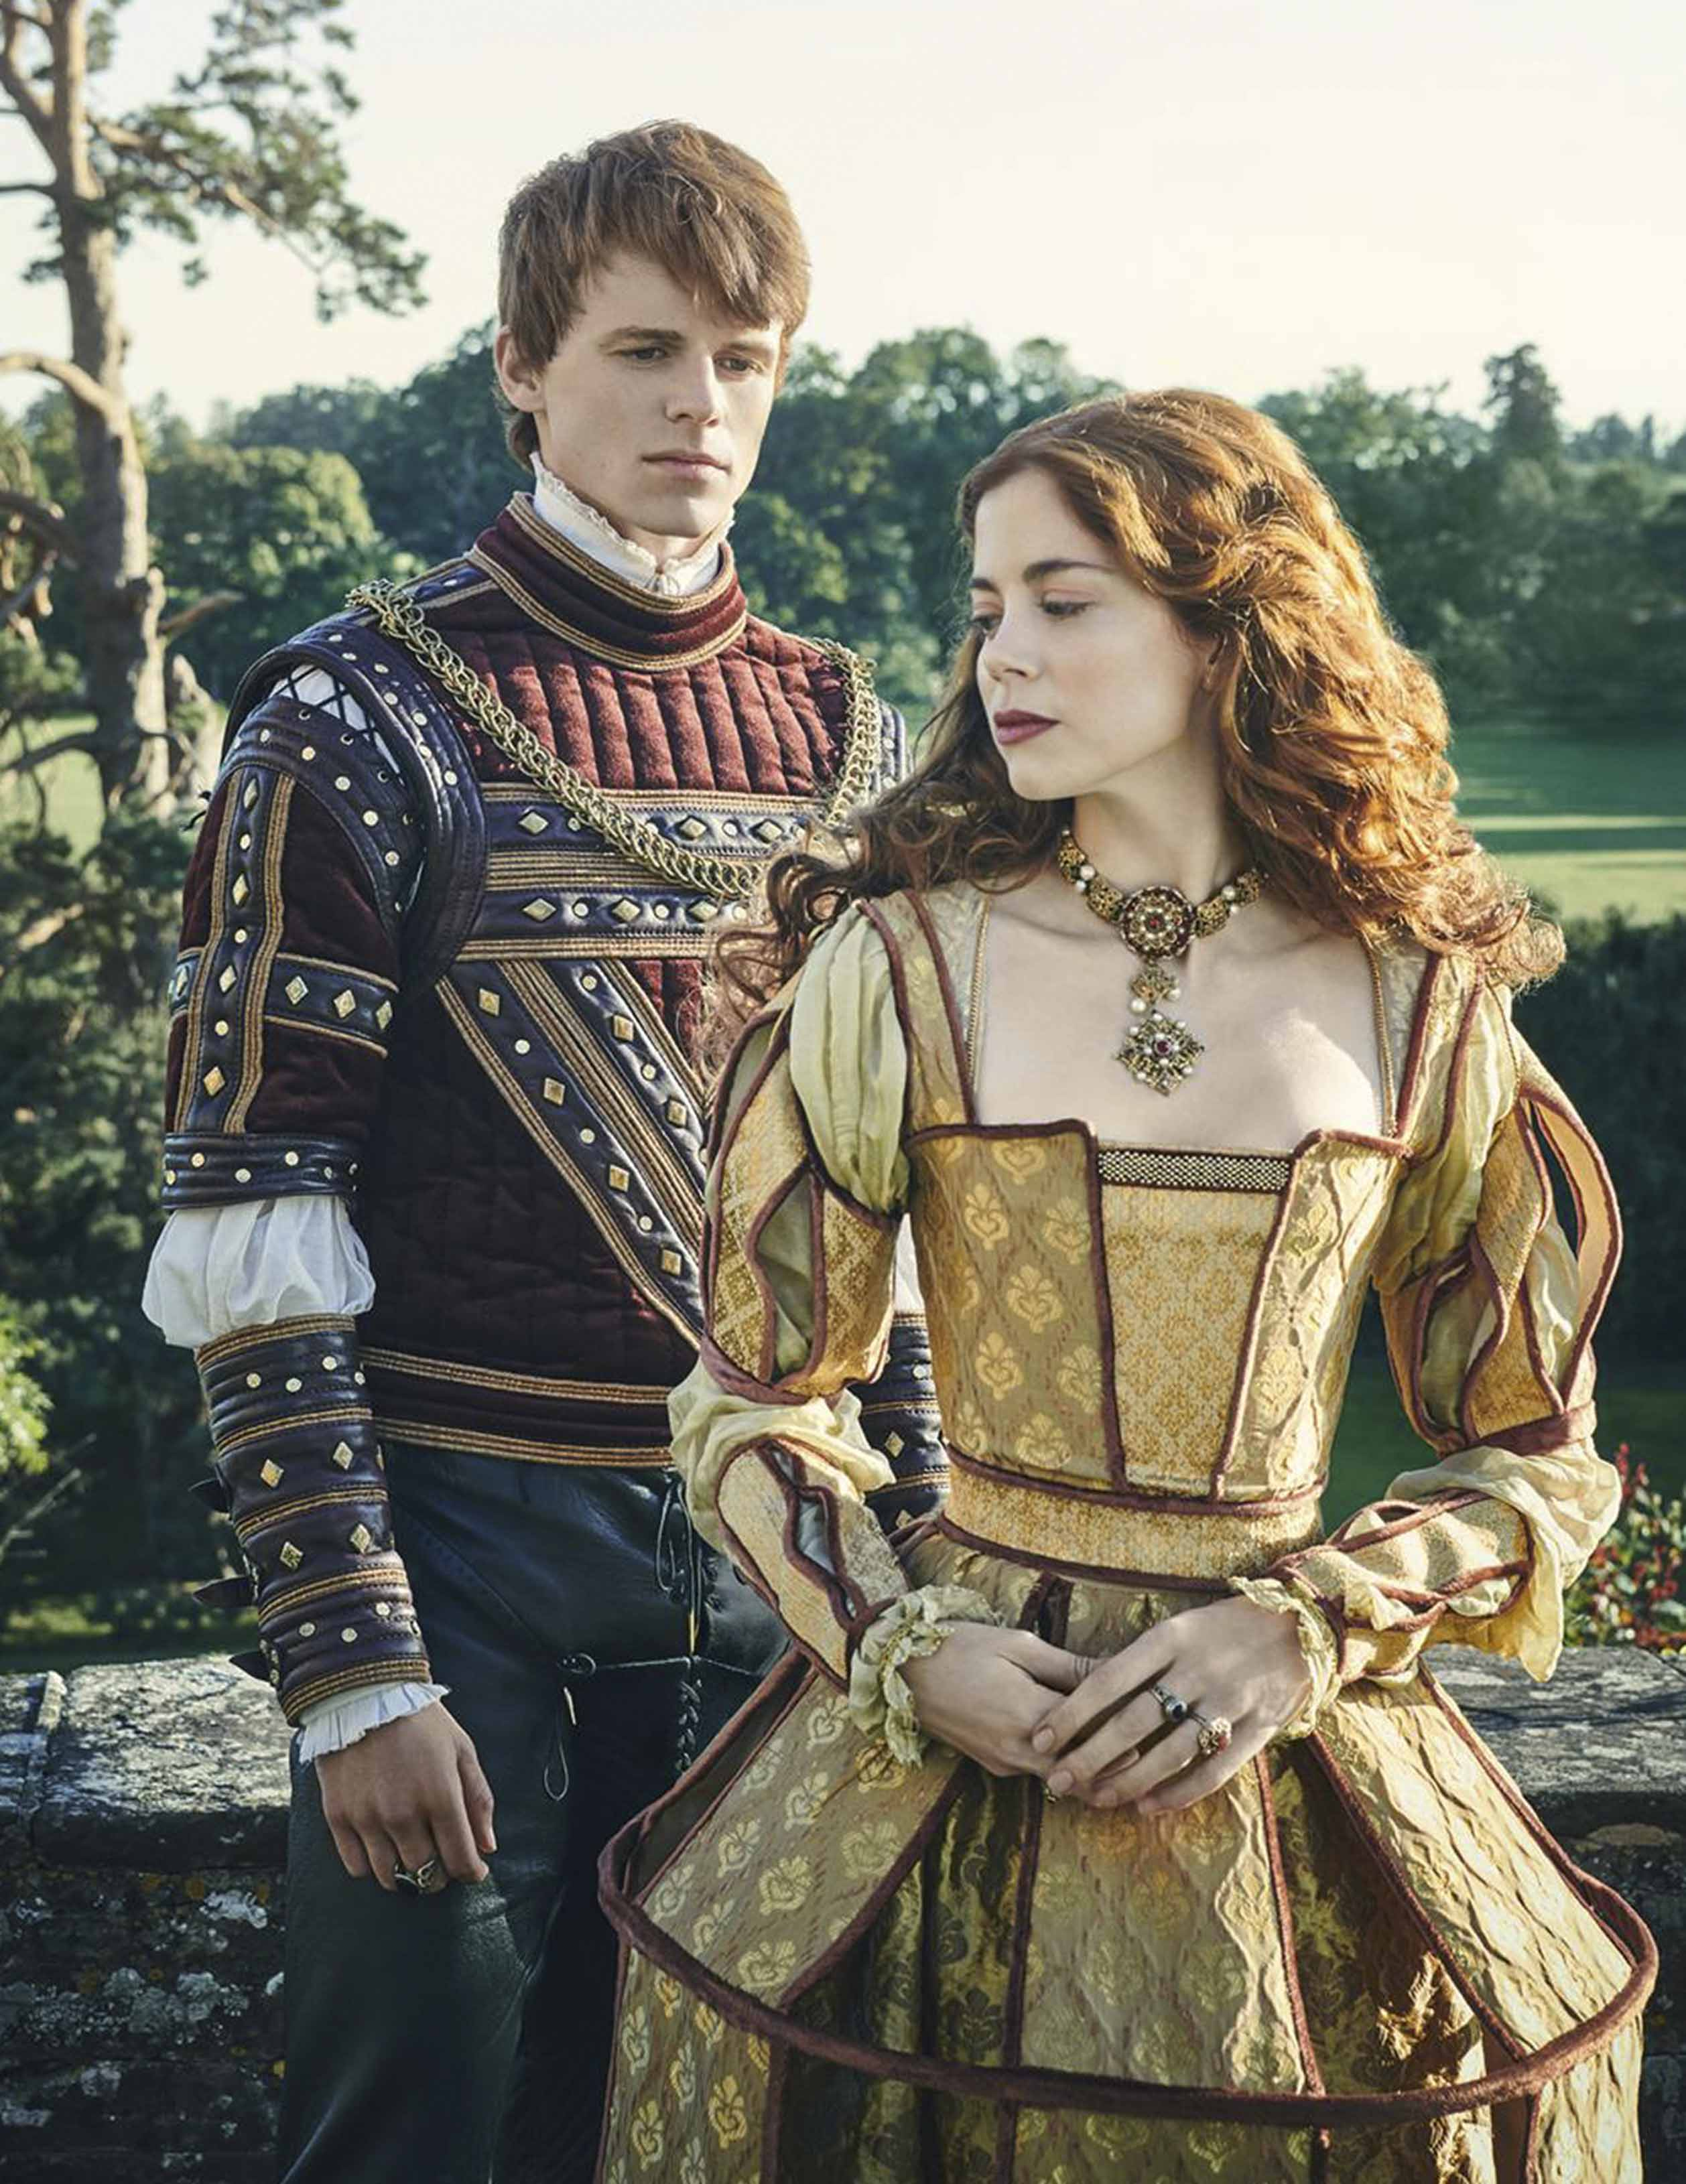 The life of Katherine of Aragon, Henry VIII's first wife, is retold in a new series screening on Amazon. Katherine and Henry VIII are portrayed by Charlotte Hope and Ruairi O'Connor.